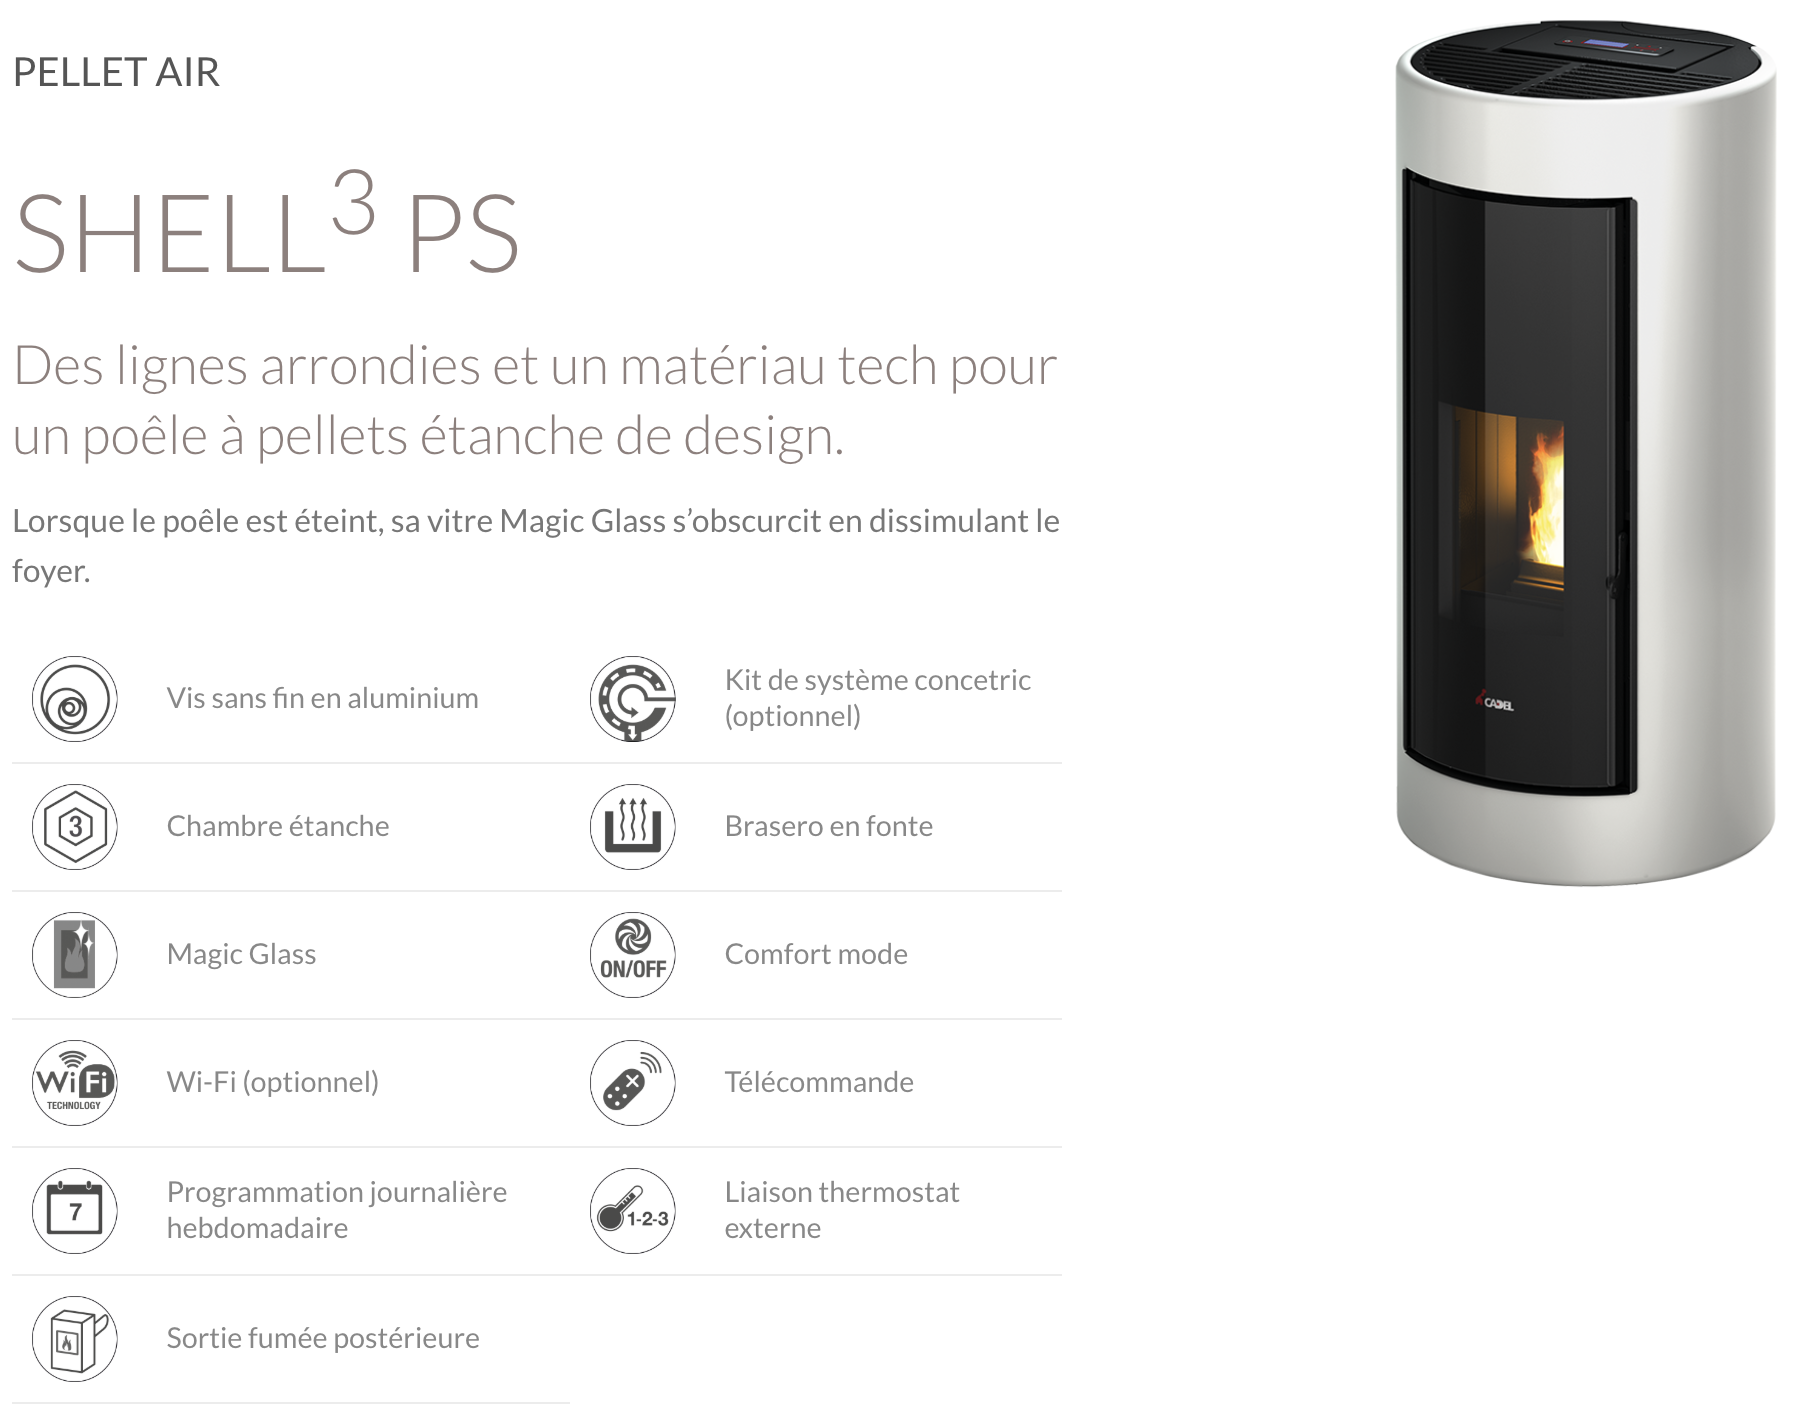 Shell 3 PS en 9kW